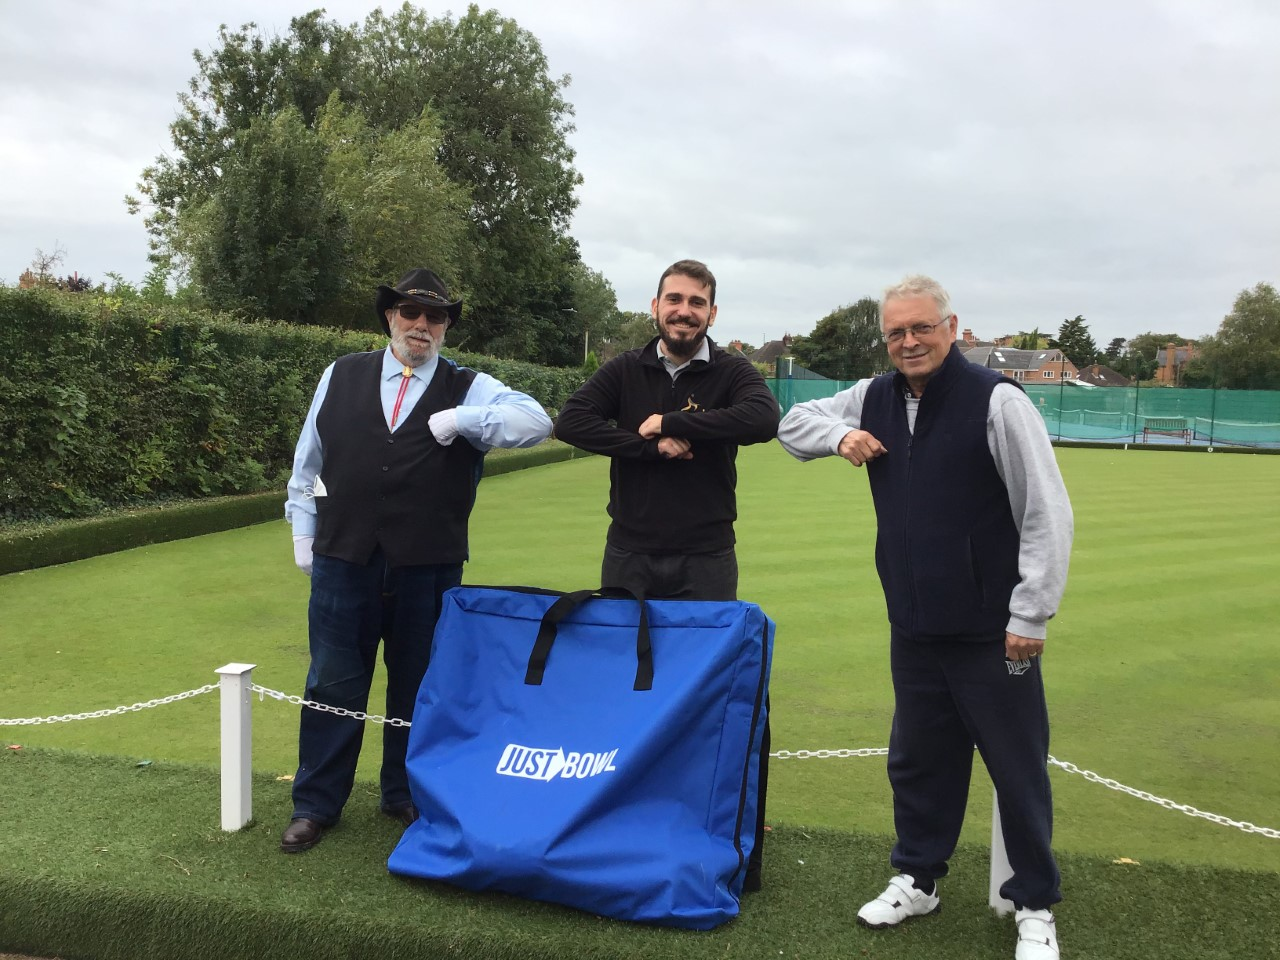 George Babalev, Club Development Manager for the BDA presented the Just Bowls bag and equipment to Club President Mick Reeve and Chairman Terry Whiteside to kick start the programme.